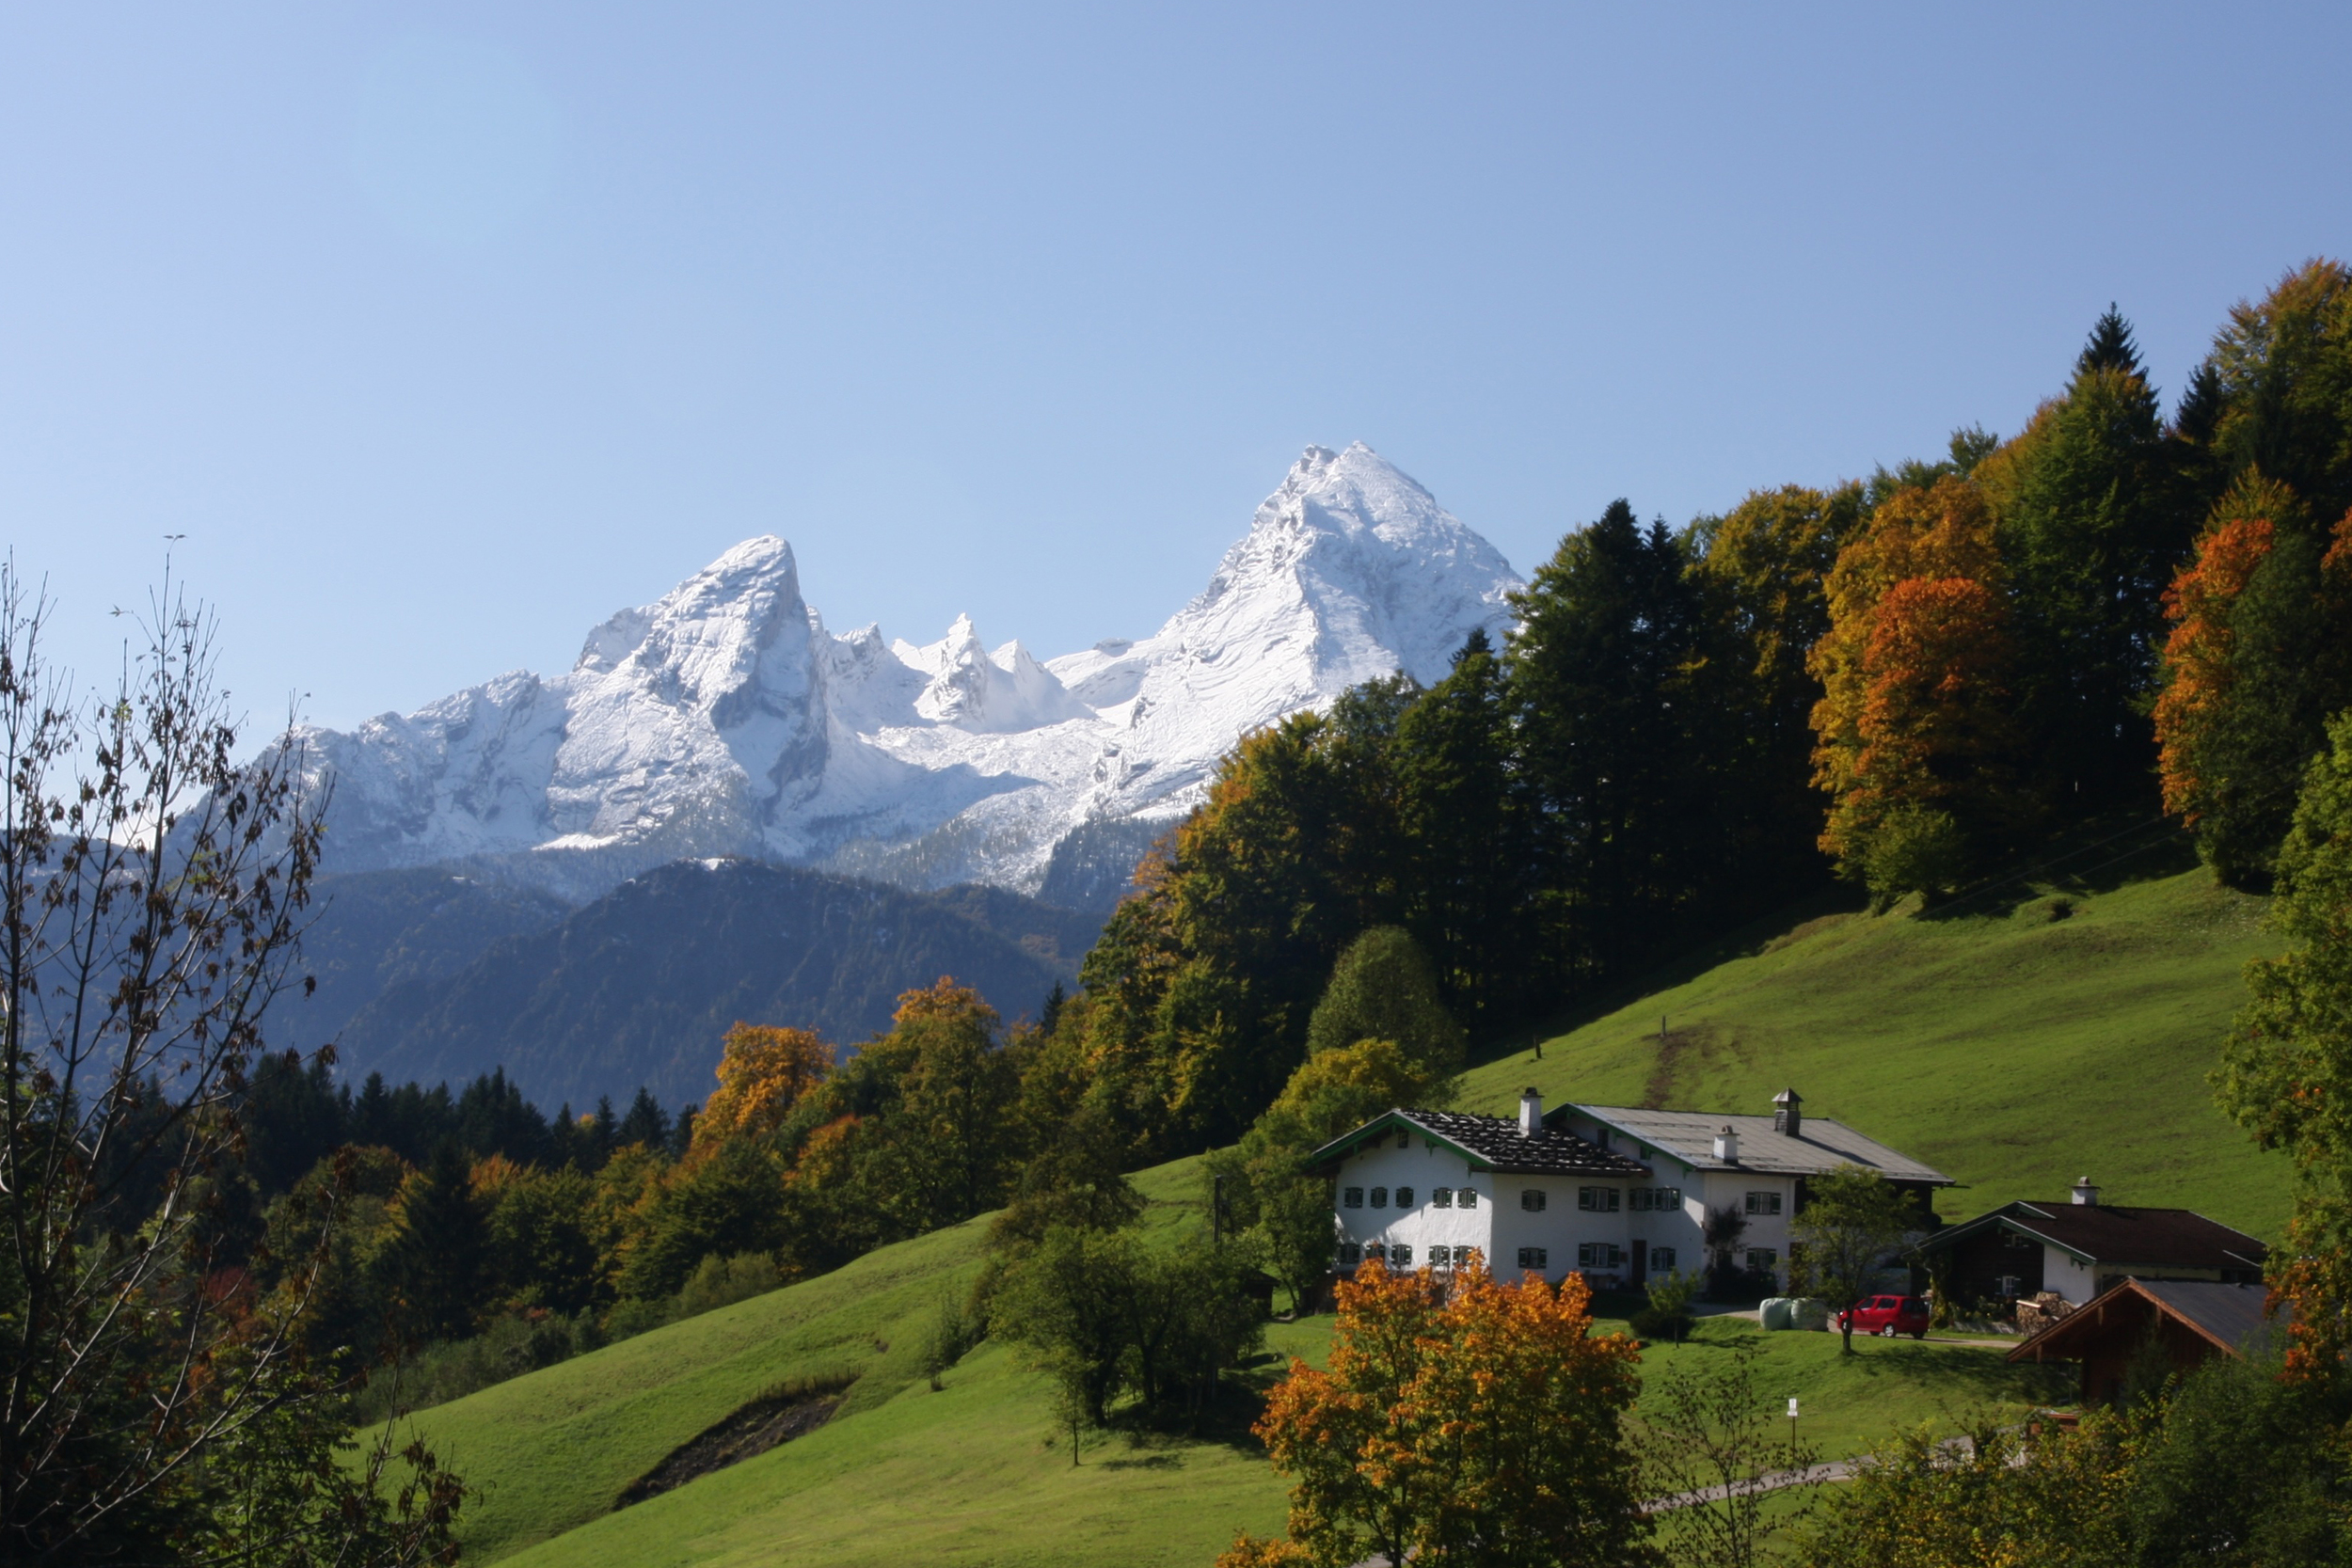 A house in front of a mountain in Berchtesgaden Alps